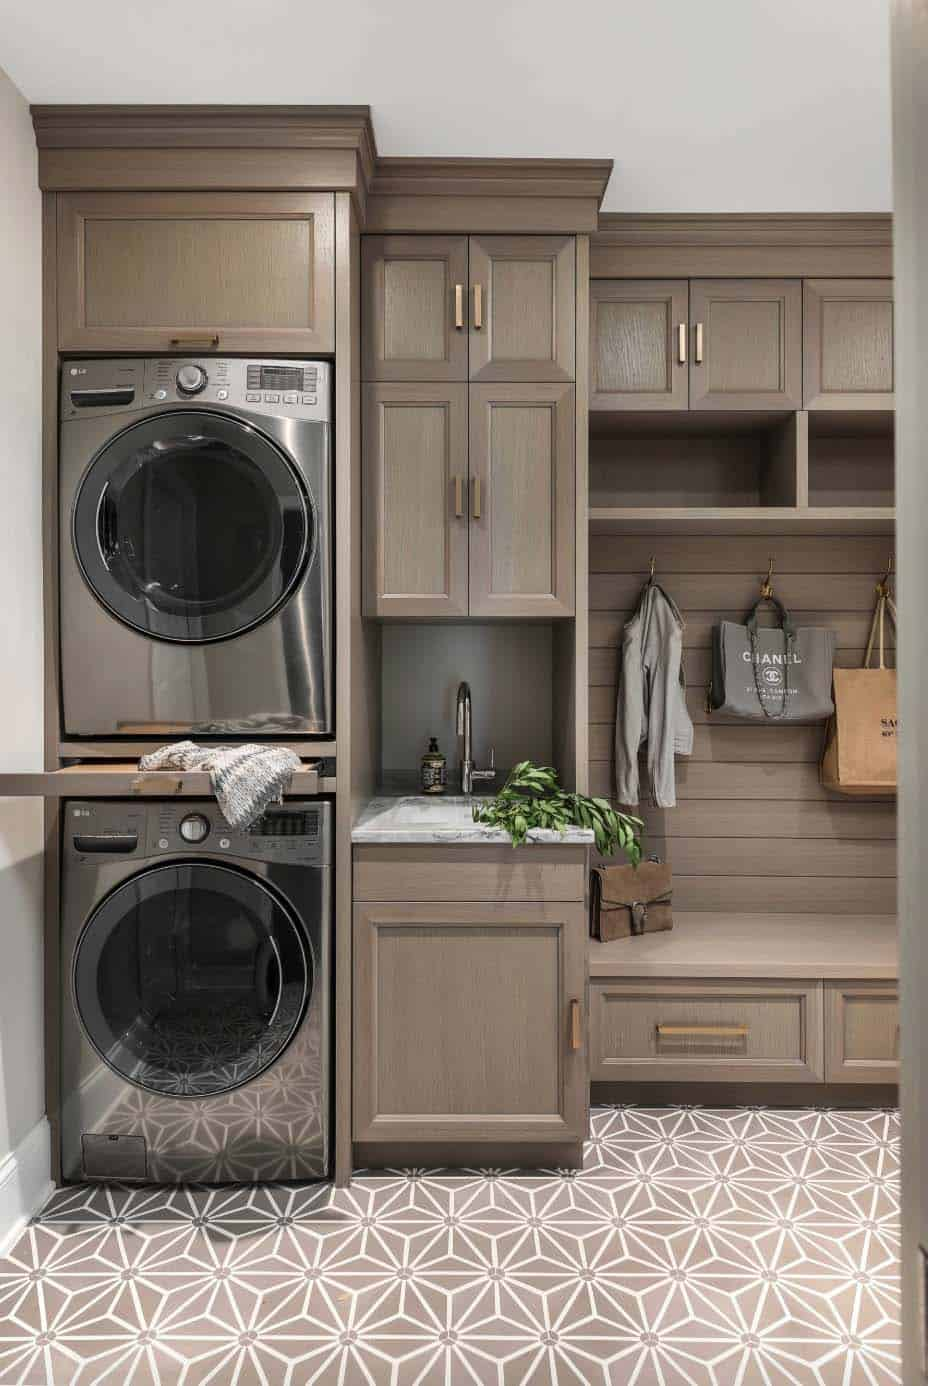 15 Functional And Stylish Laundry Room Design Ideas To Inspire